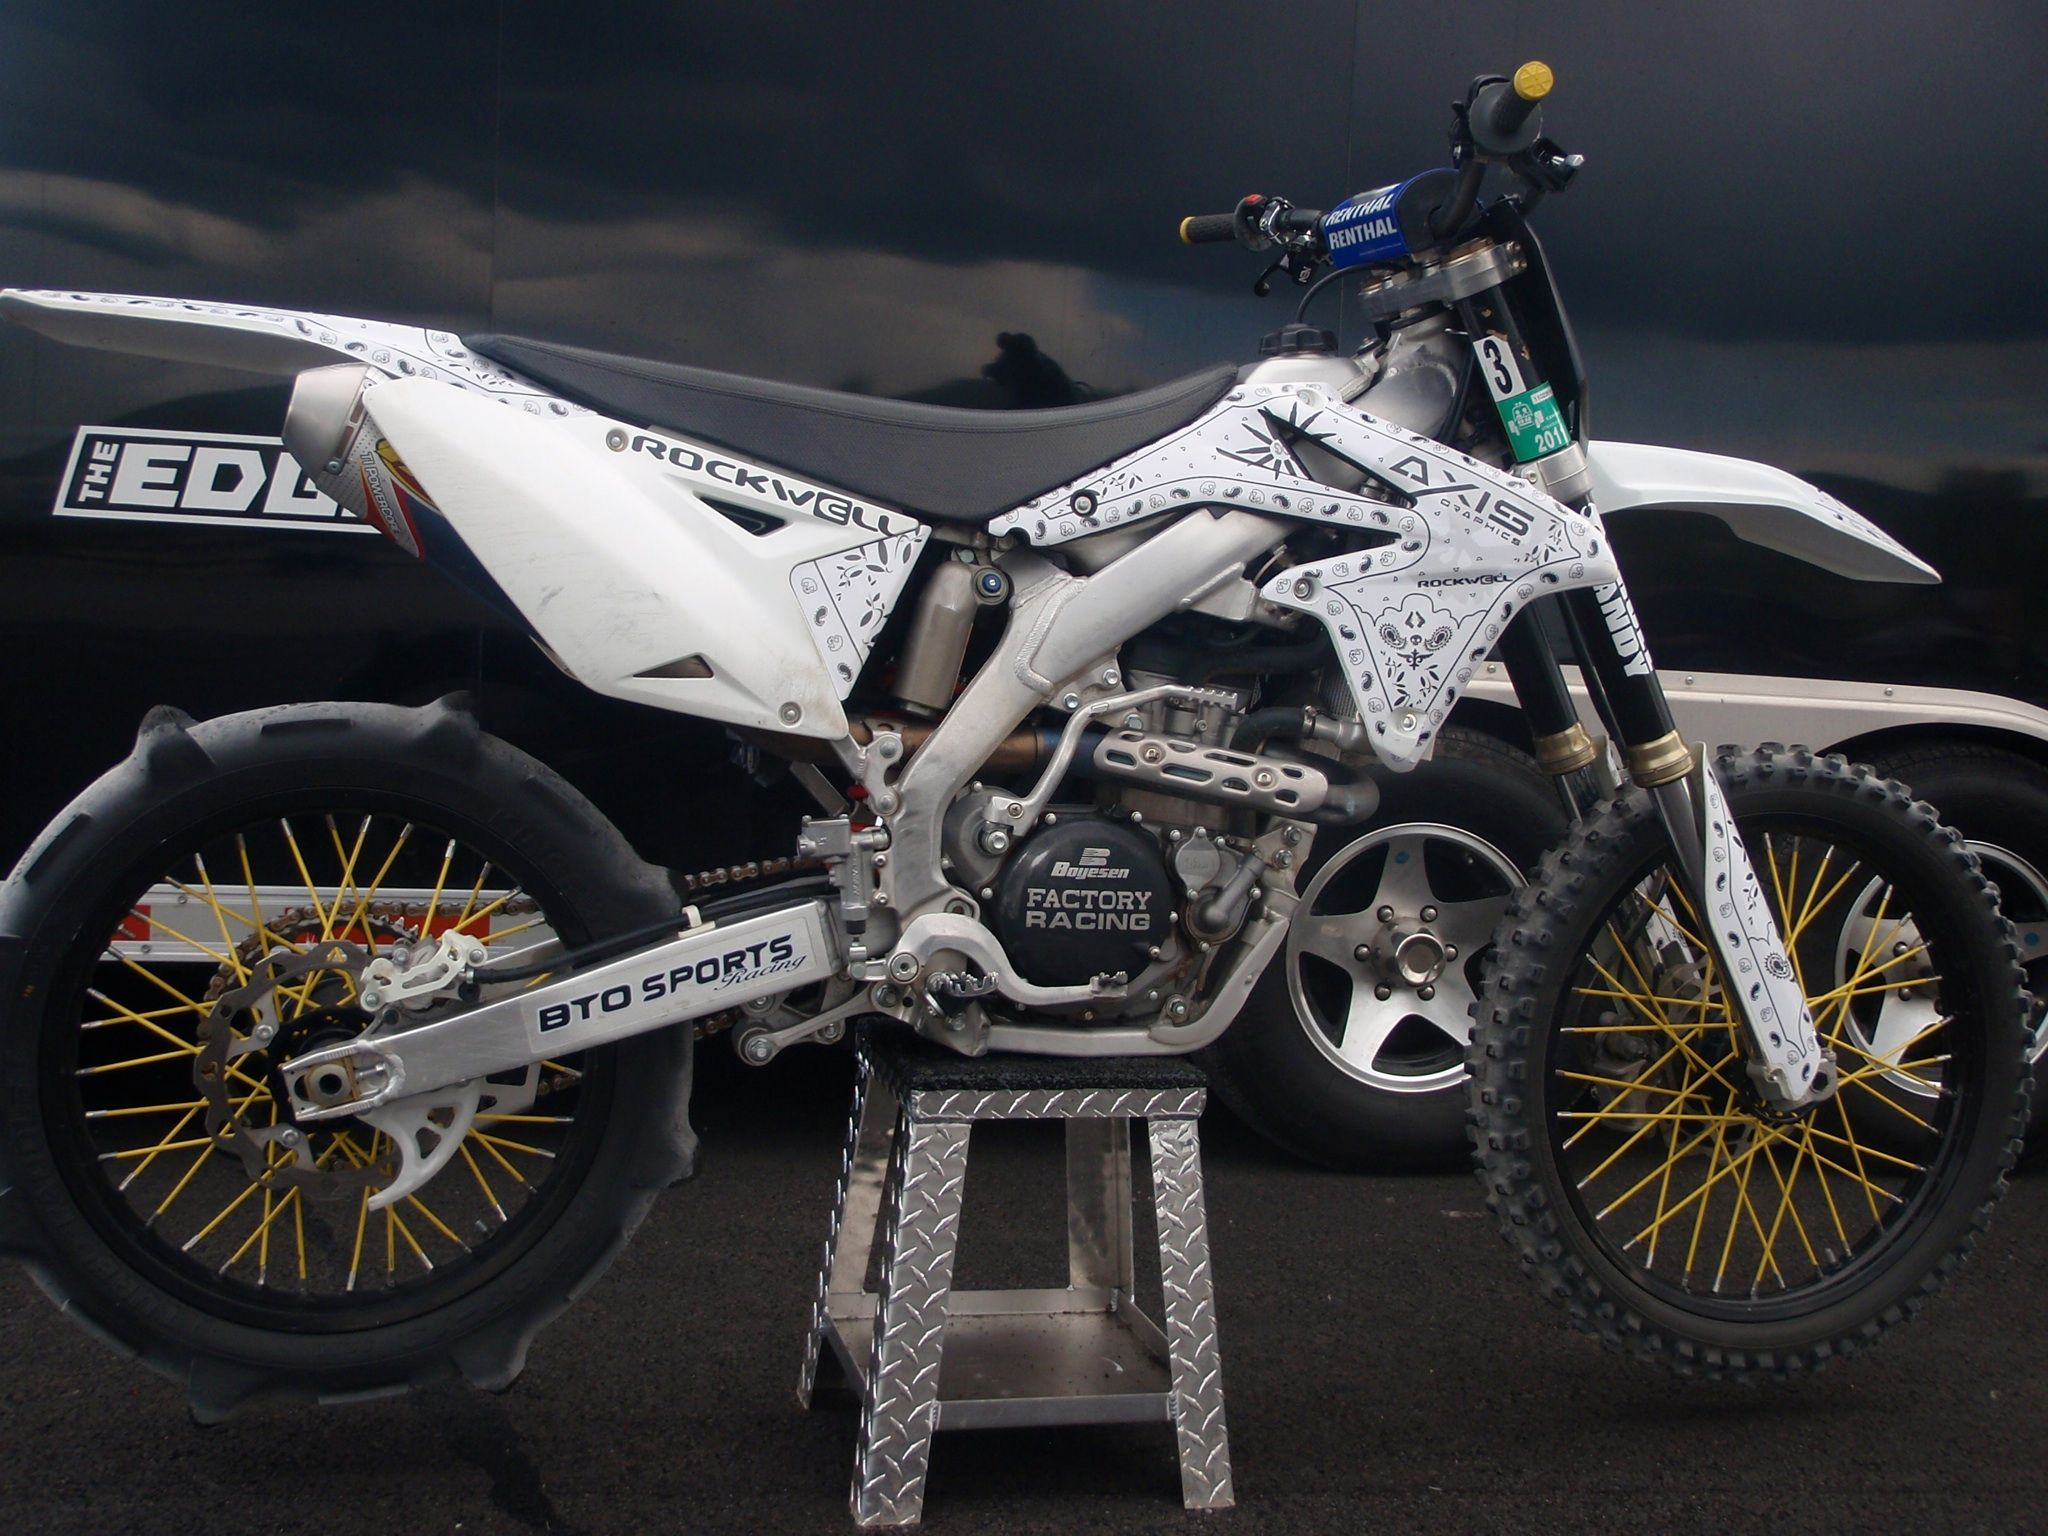 Suzuki Rmz450 Axis Graphics Probably The Best Looking Graphics I